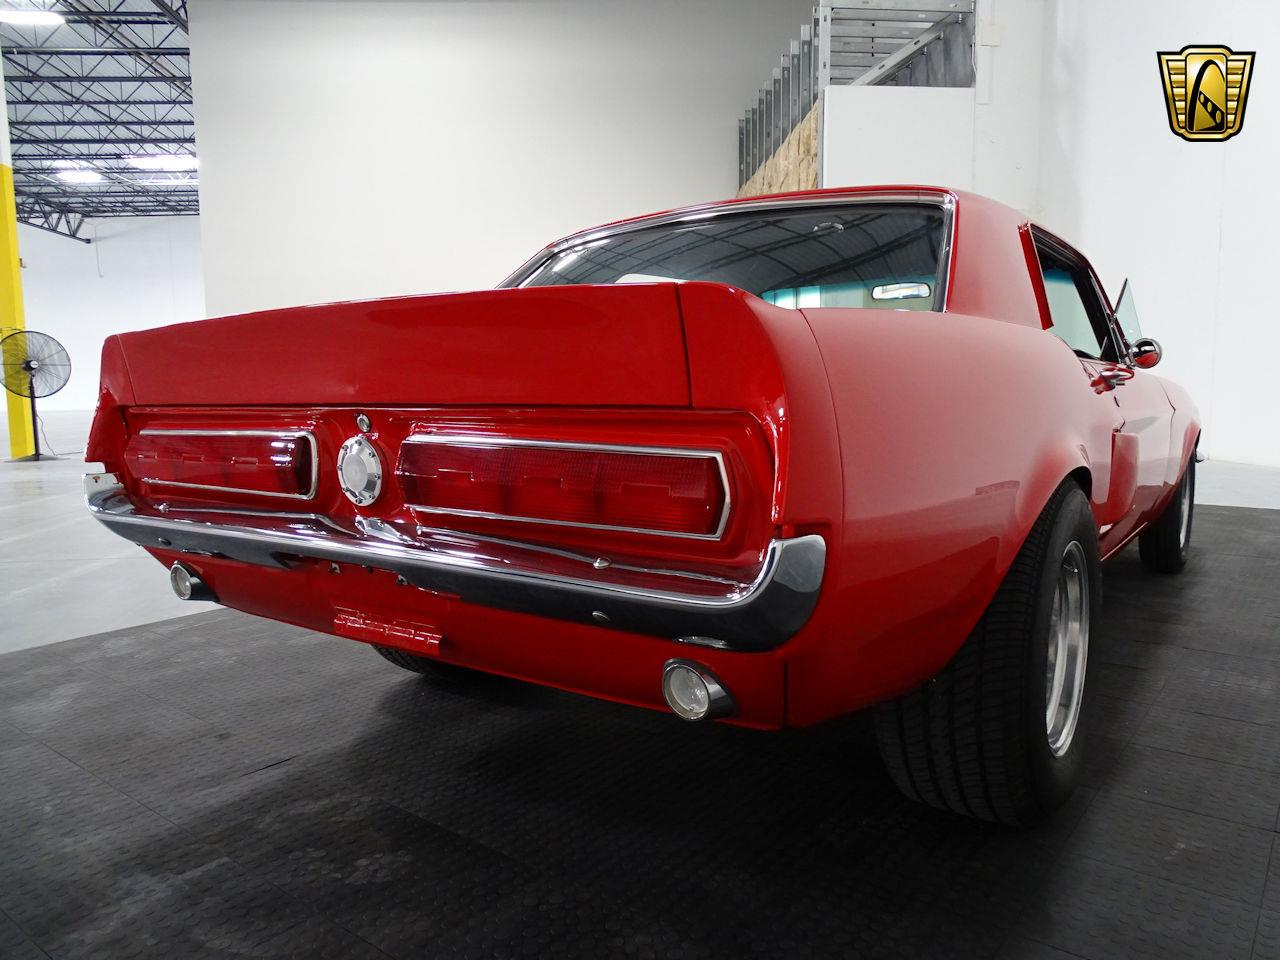 Large Picture of Classic '68 Ford Mustang located in Texas - $31,995.00 Offered by Gateway Classic Cars - Houston - LD5O